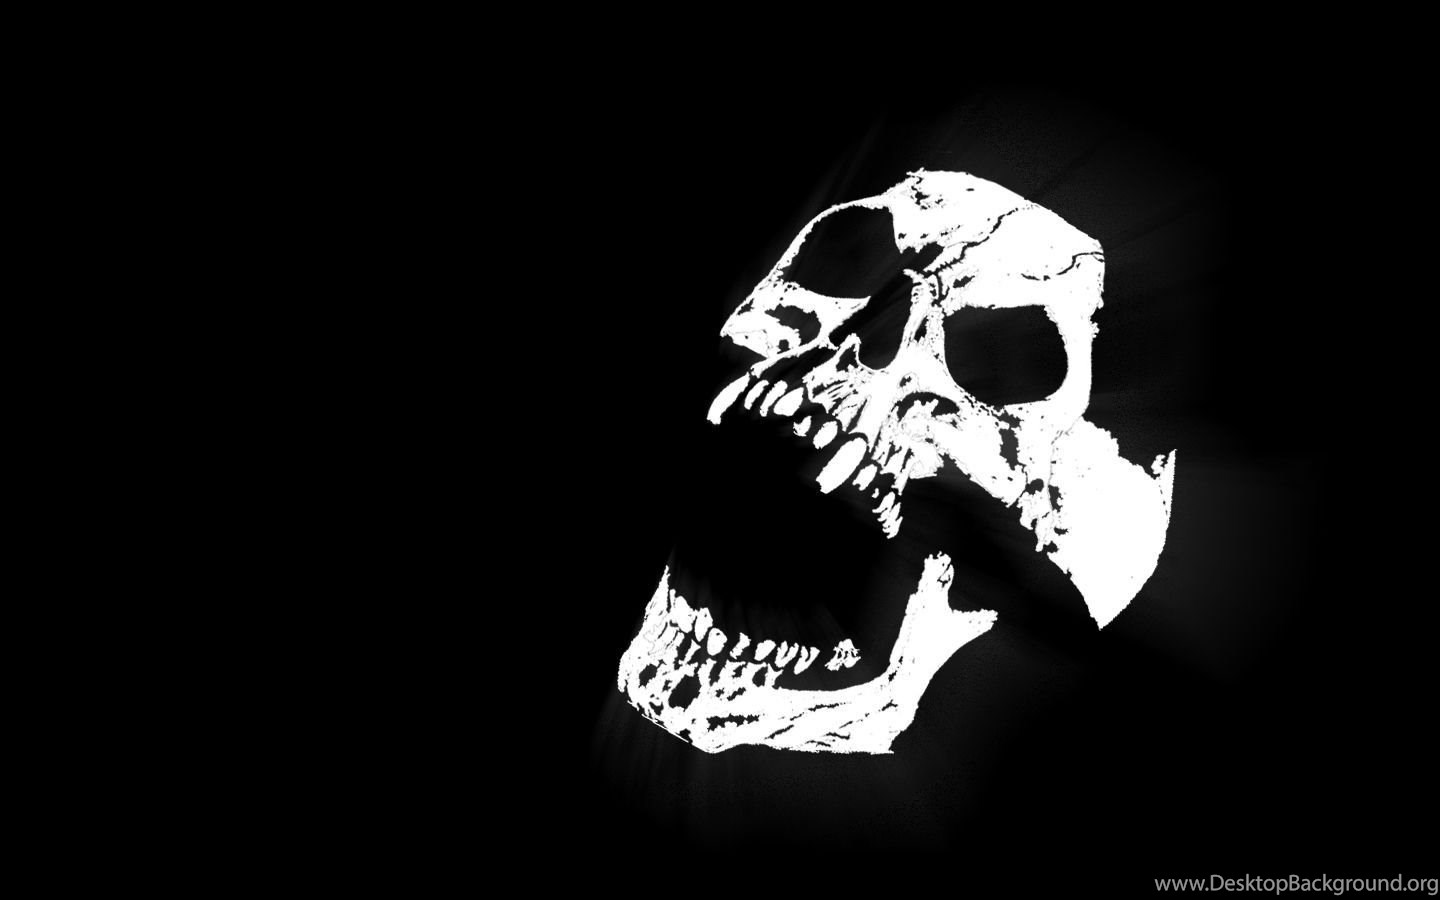 Black And White Skull Wallpapers Hd Wallpapers Pretty Desktop